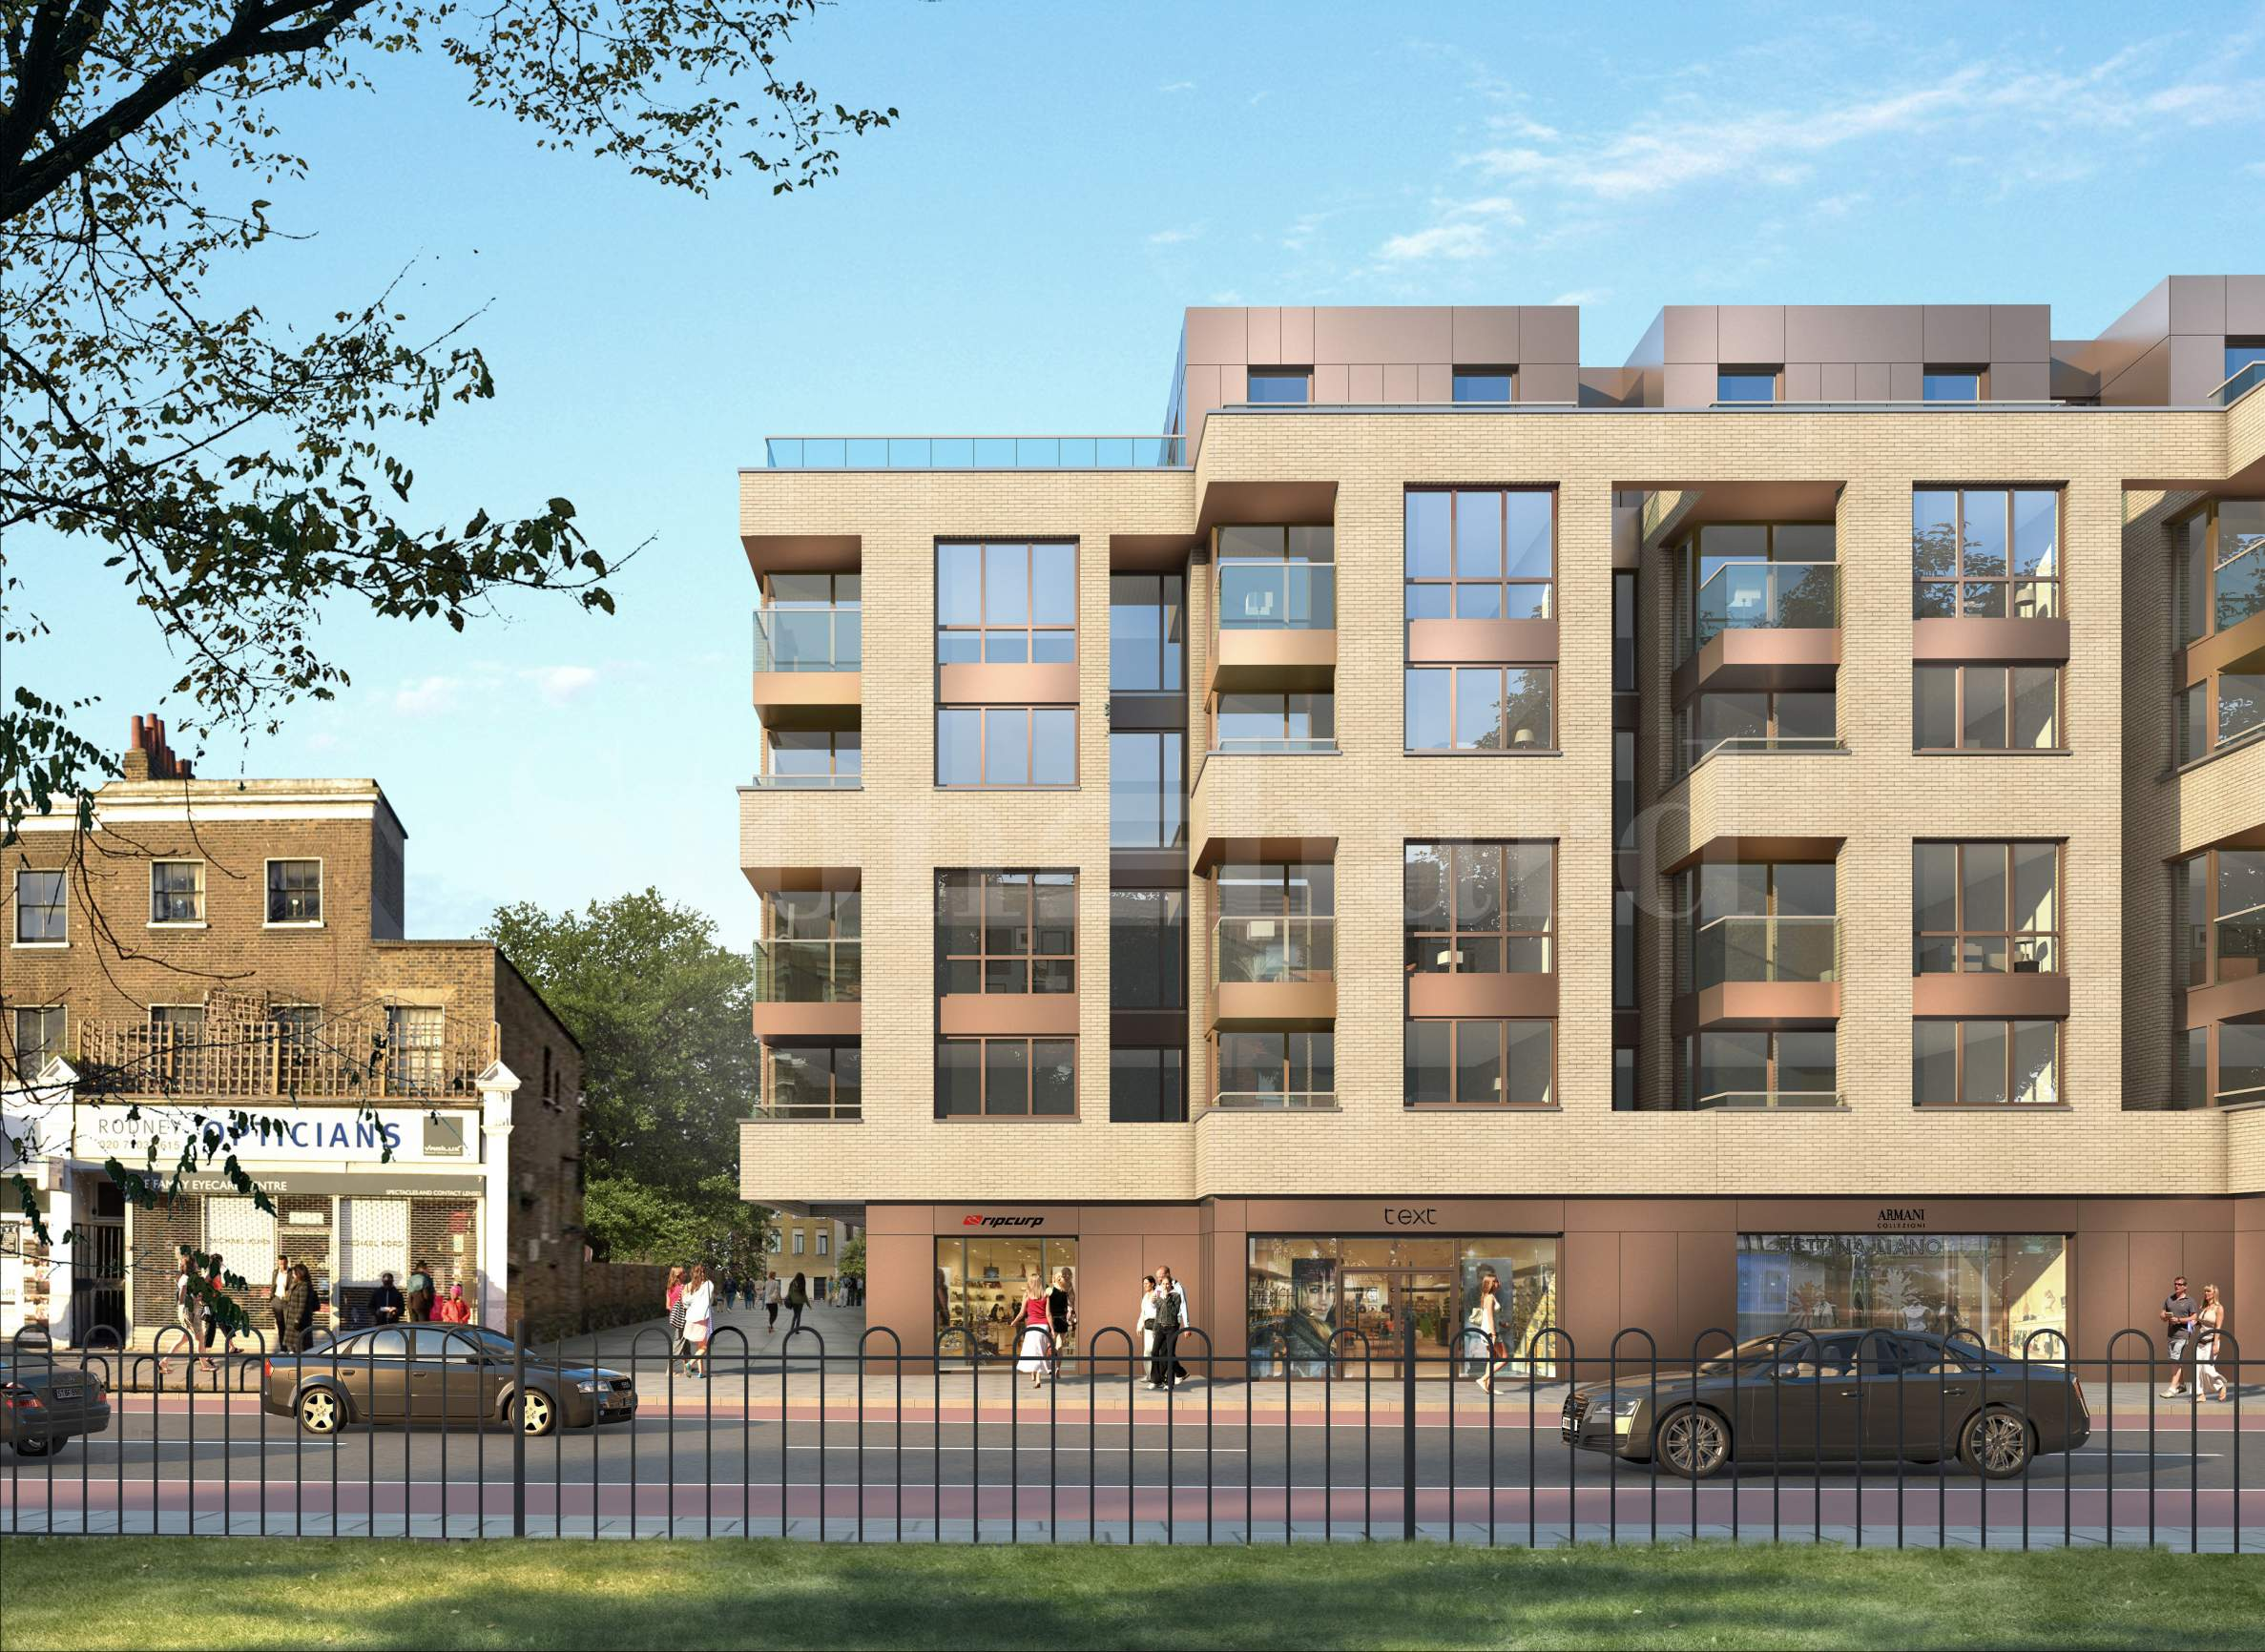 New-build apartments with direct views of Camberwell Green2 - Stonehard